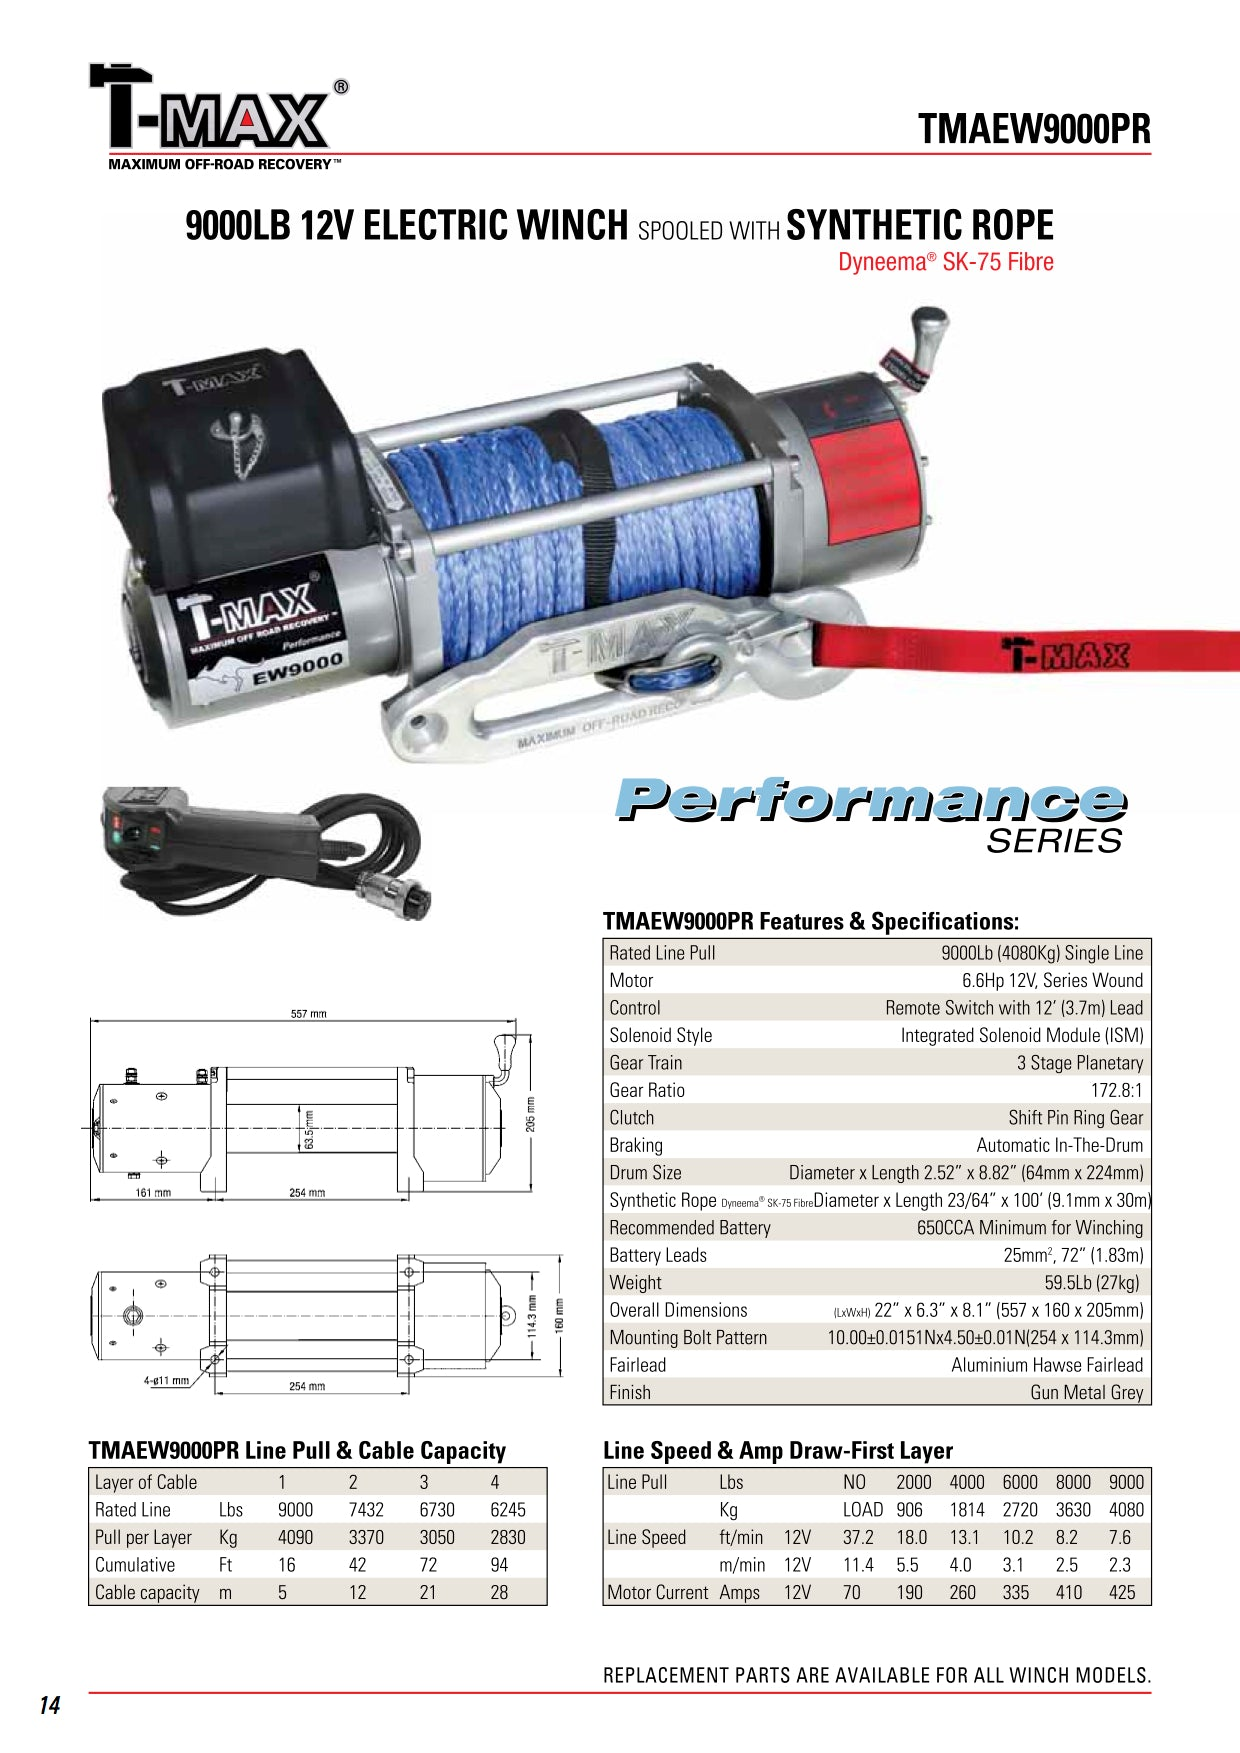 after sales support is paramount to t-max, so rest assured when  purchasing a t-max winch you'll be taken care of well beyond your purchase  date